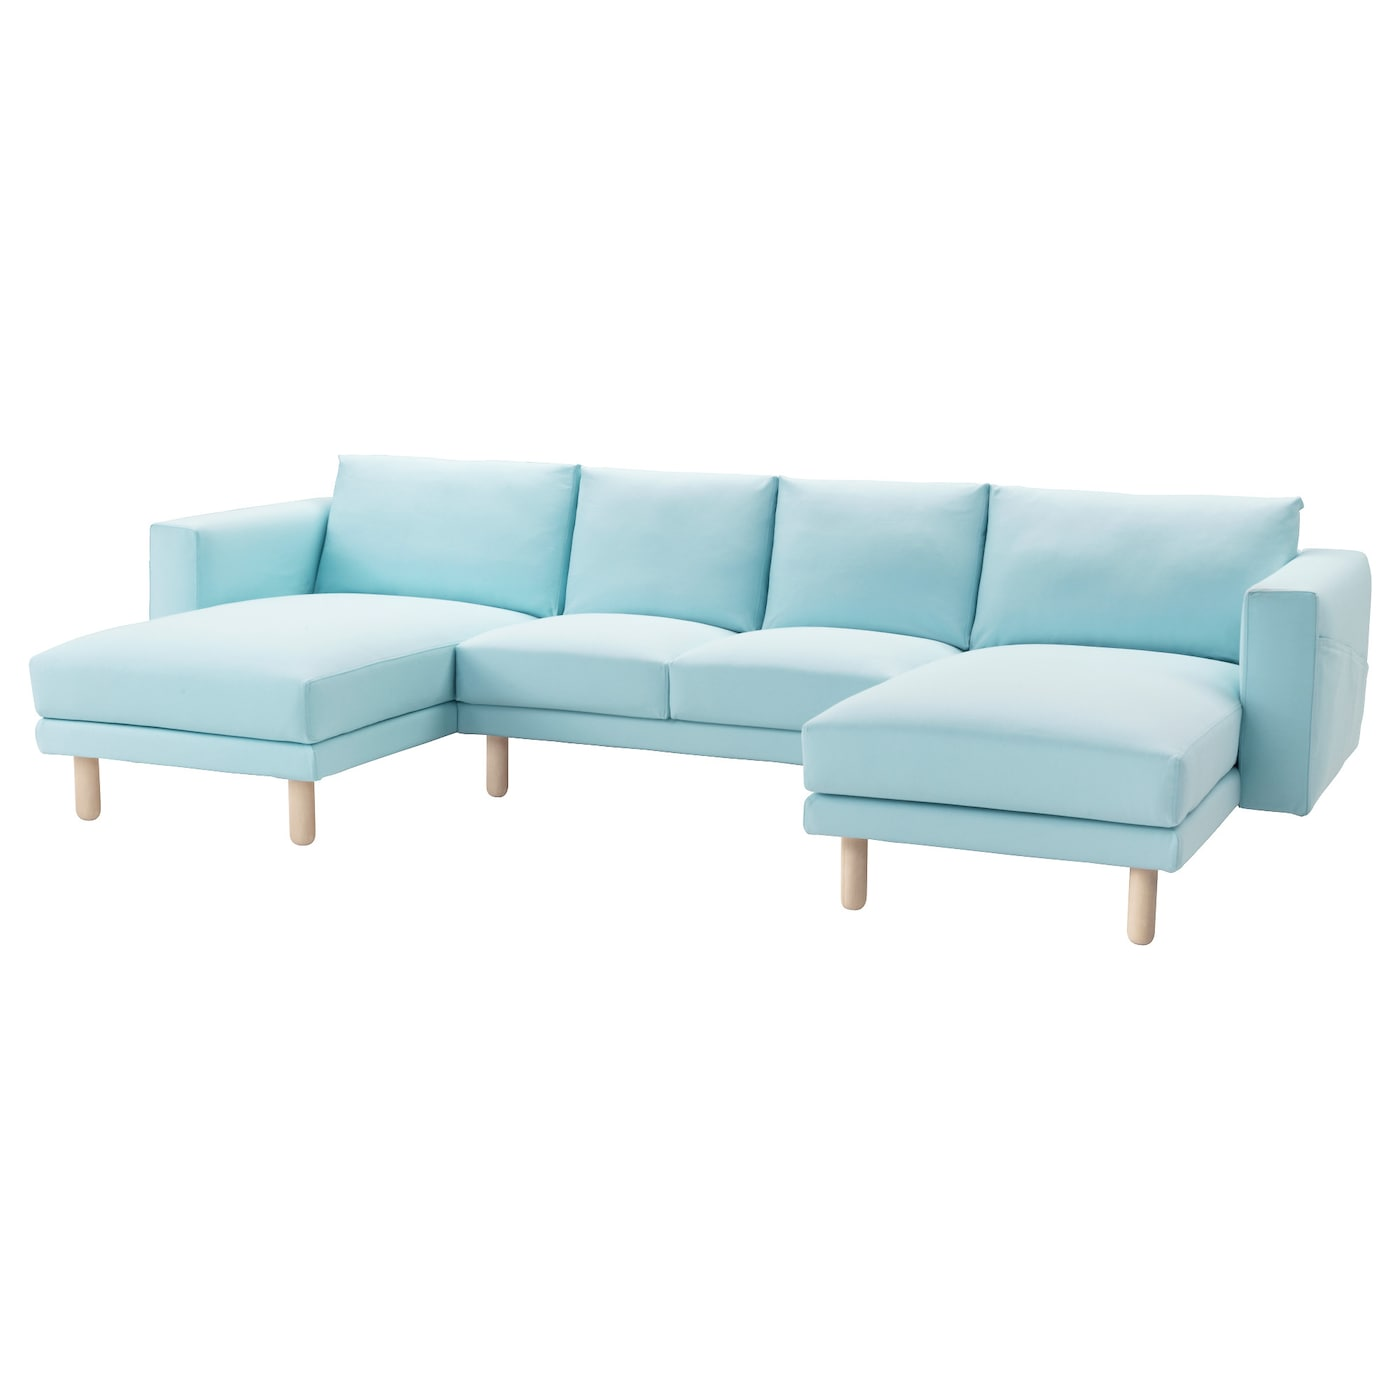 norsborg 2 seat sofa with 2 chaise longues gr sbo light blue birch ikea. Black Bedroom Furniture Sets. Home Design Ideas